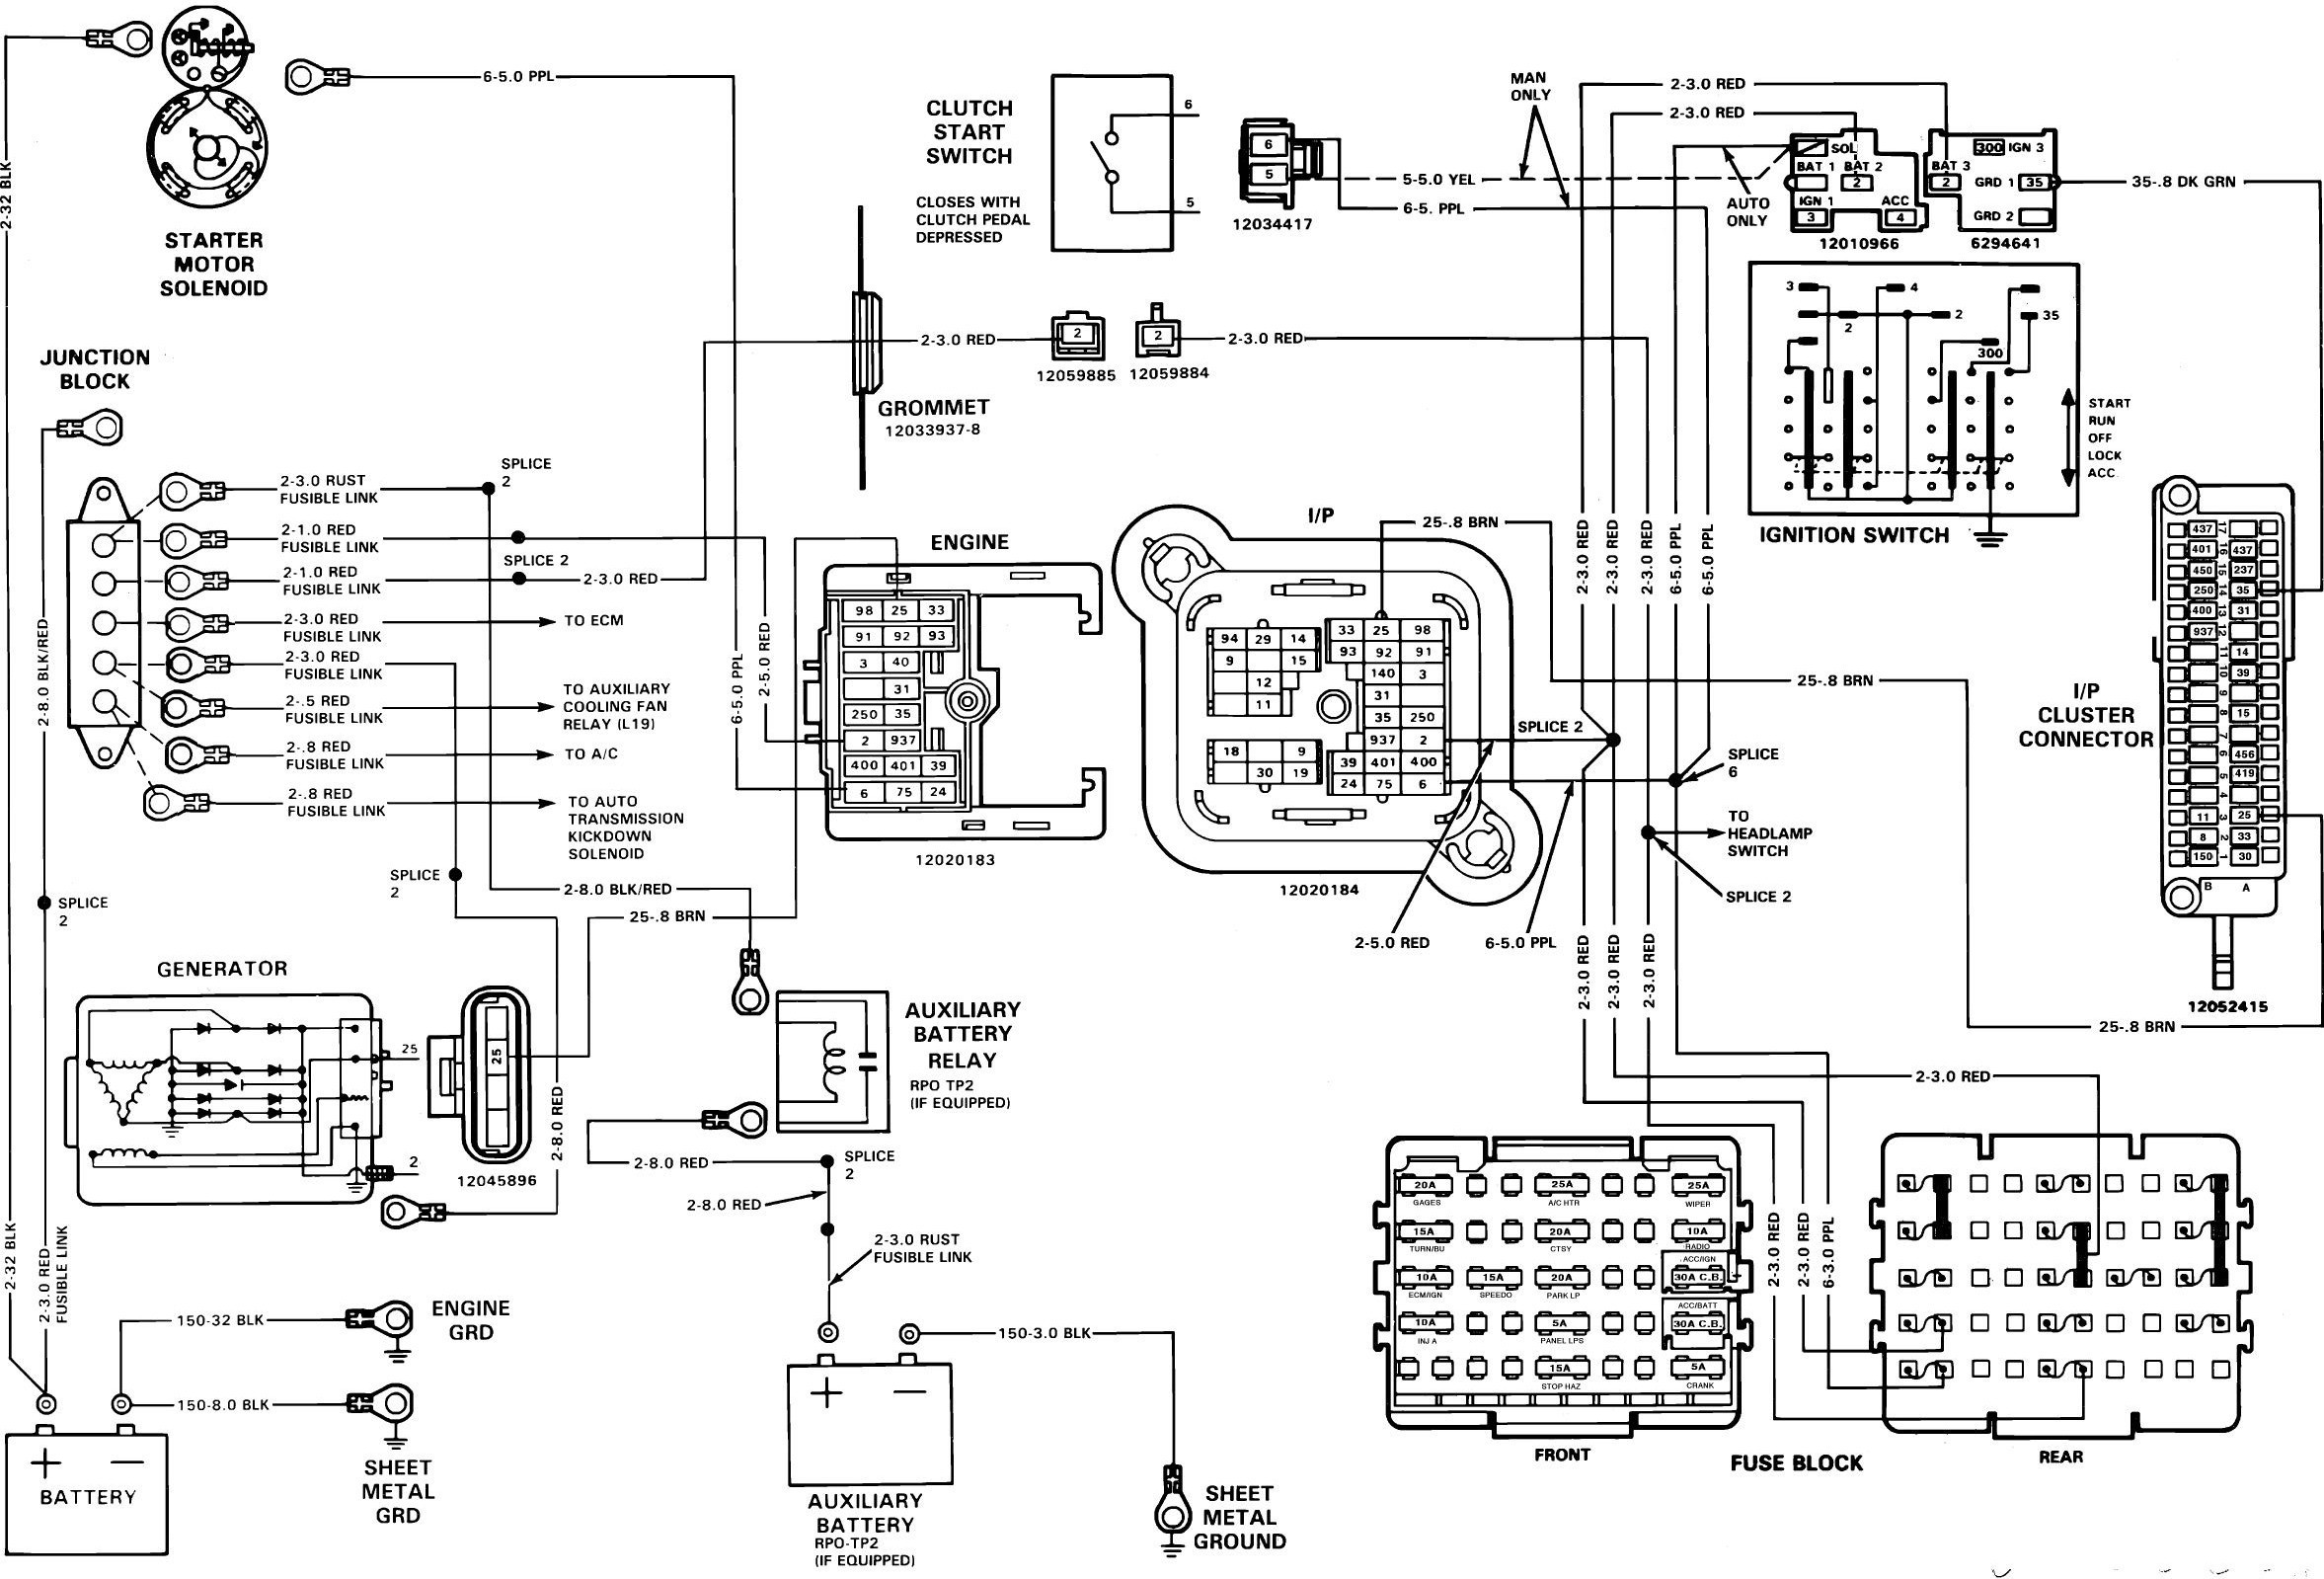 88 Toyota Pickup Wiring Diagram | Wiring Diagram on 88 ford f-150 wiring diagram, 88 jeep wrangler wiring diagram, 88 toyota pickup parts, 88 nissan 240sx wiring diagram, 88 toyota pickup exhaust, 88 toyota pickup vacuum diagram, 88 toyota pickup oil filter, 99 honda accord wiring diagram, 88 toyota pickup speaker, 88 nissan sentra wiring diagram, 88 toyota pickup door, 88 toyota pickup seats, 88 toyota pickup carburetor, 88 toyota pickup wheels, 88 buick skylark wiring diagram, 88 toyota pickup accessories, 88 honda accord wiring diagram, 88 jeep comanche wiring diagram, 88 ford mustang wiring diagram, 88 isuzu pickup wiring diagram,